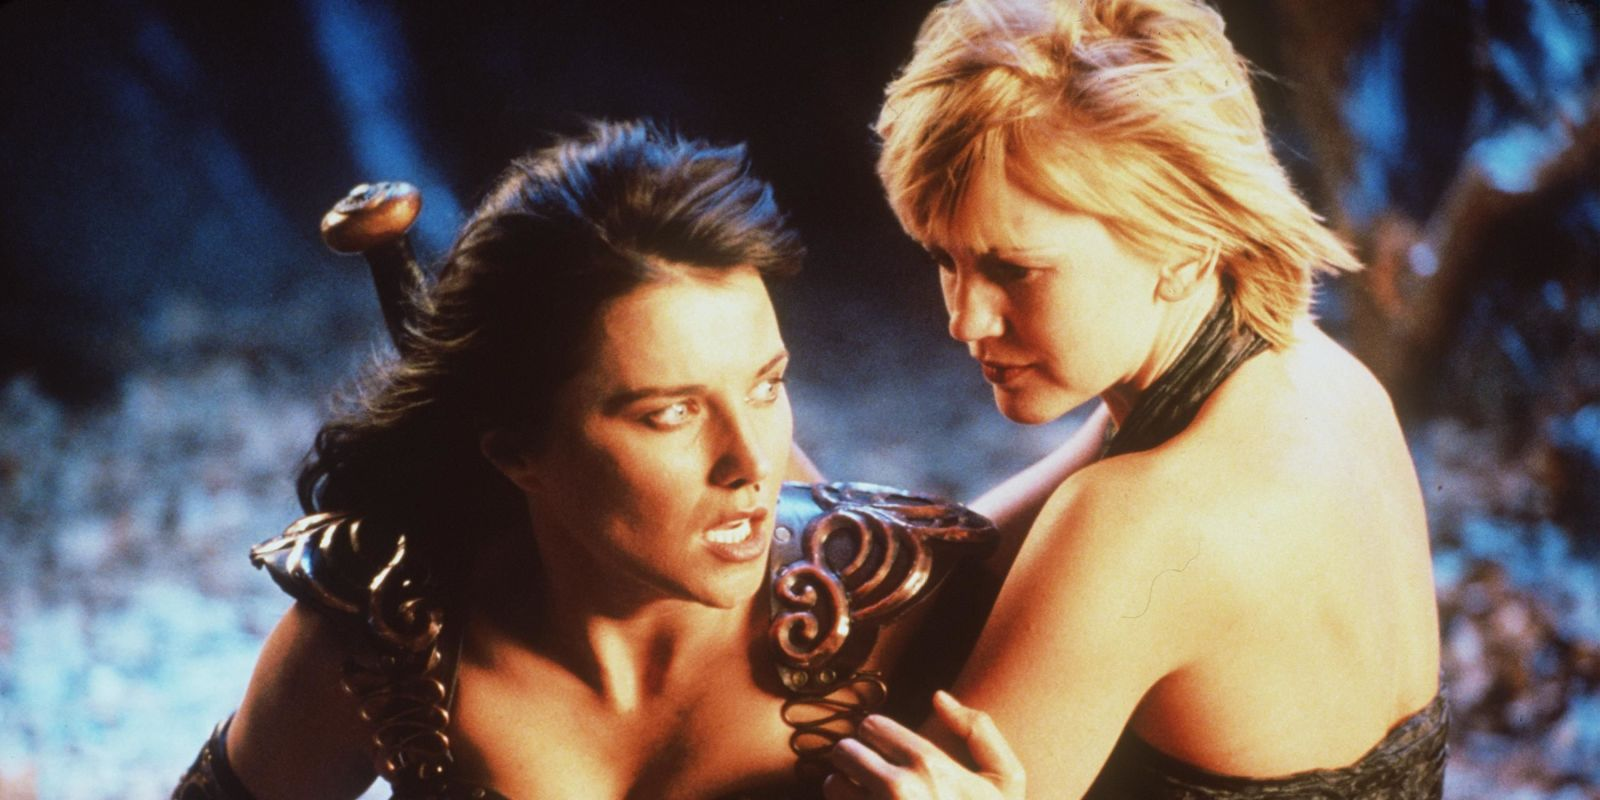 Xena is the warrior queen: actors and roles 59